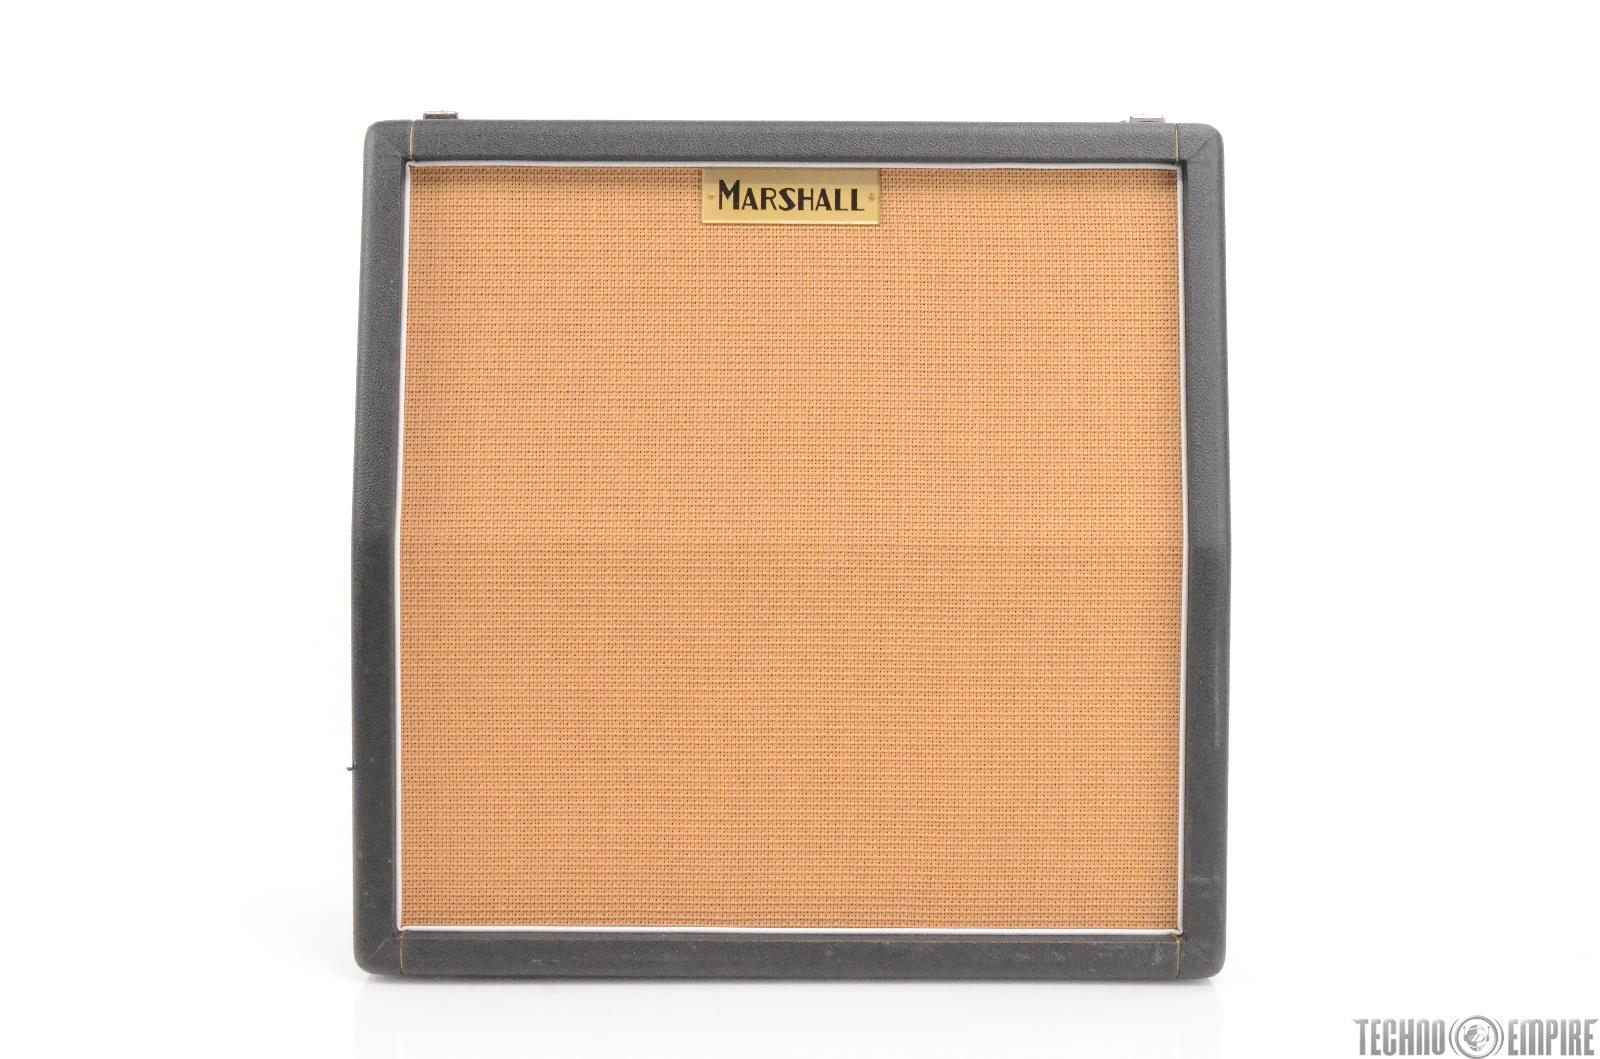 Marshall 812T40 4x12 Guitar Cab Cabinet W/ Celestion G12 Alnico Gold #28923